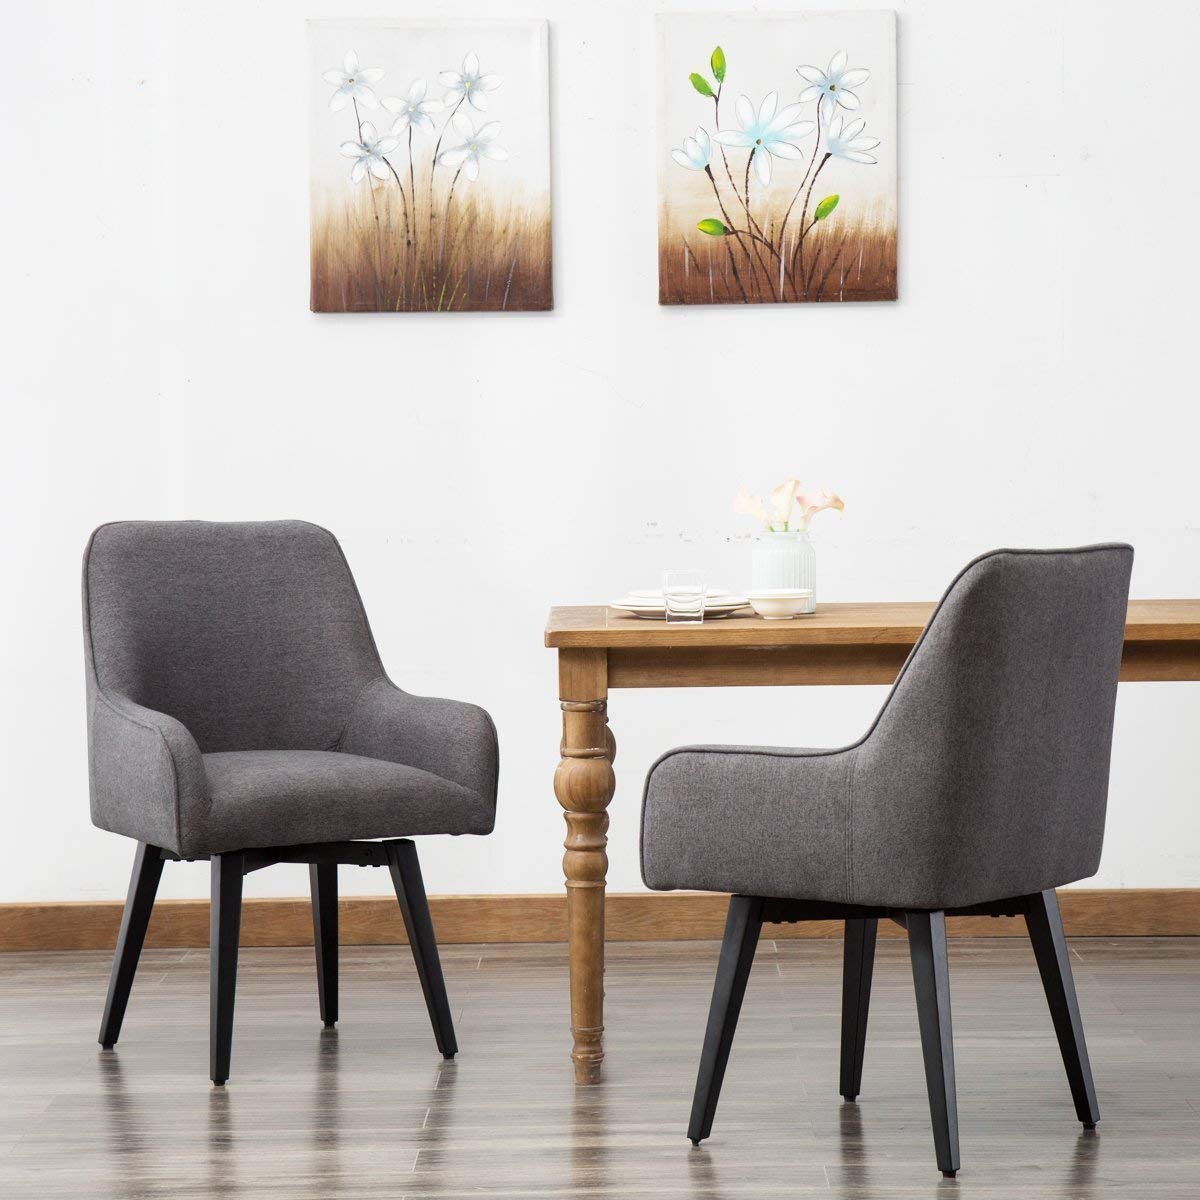 Upholstered Swivel Kitchen Chair With Armrests Comfortable Armchair For Dining Table Interior Design Ideas